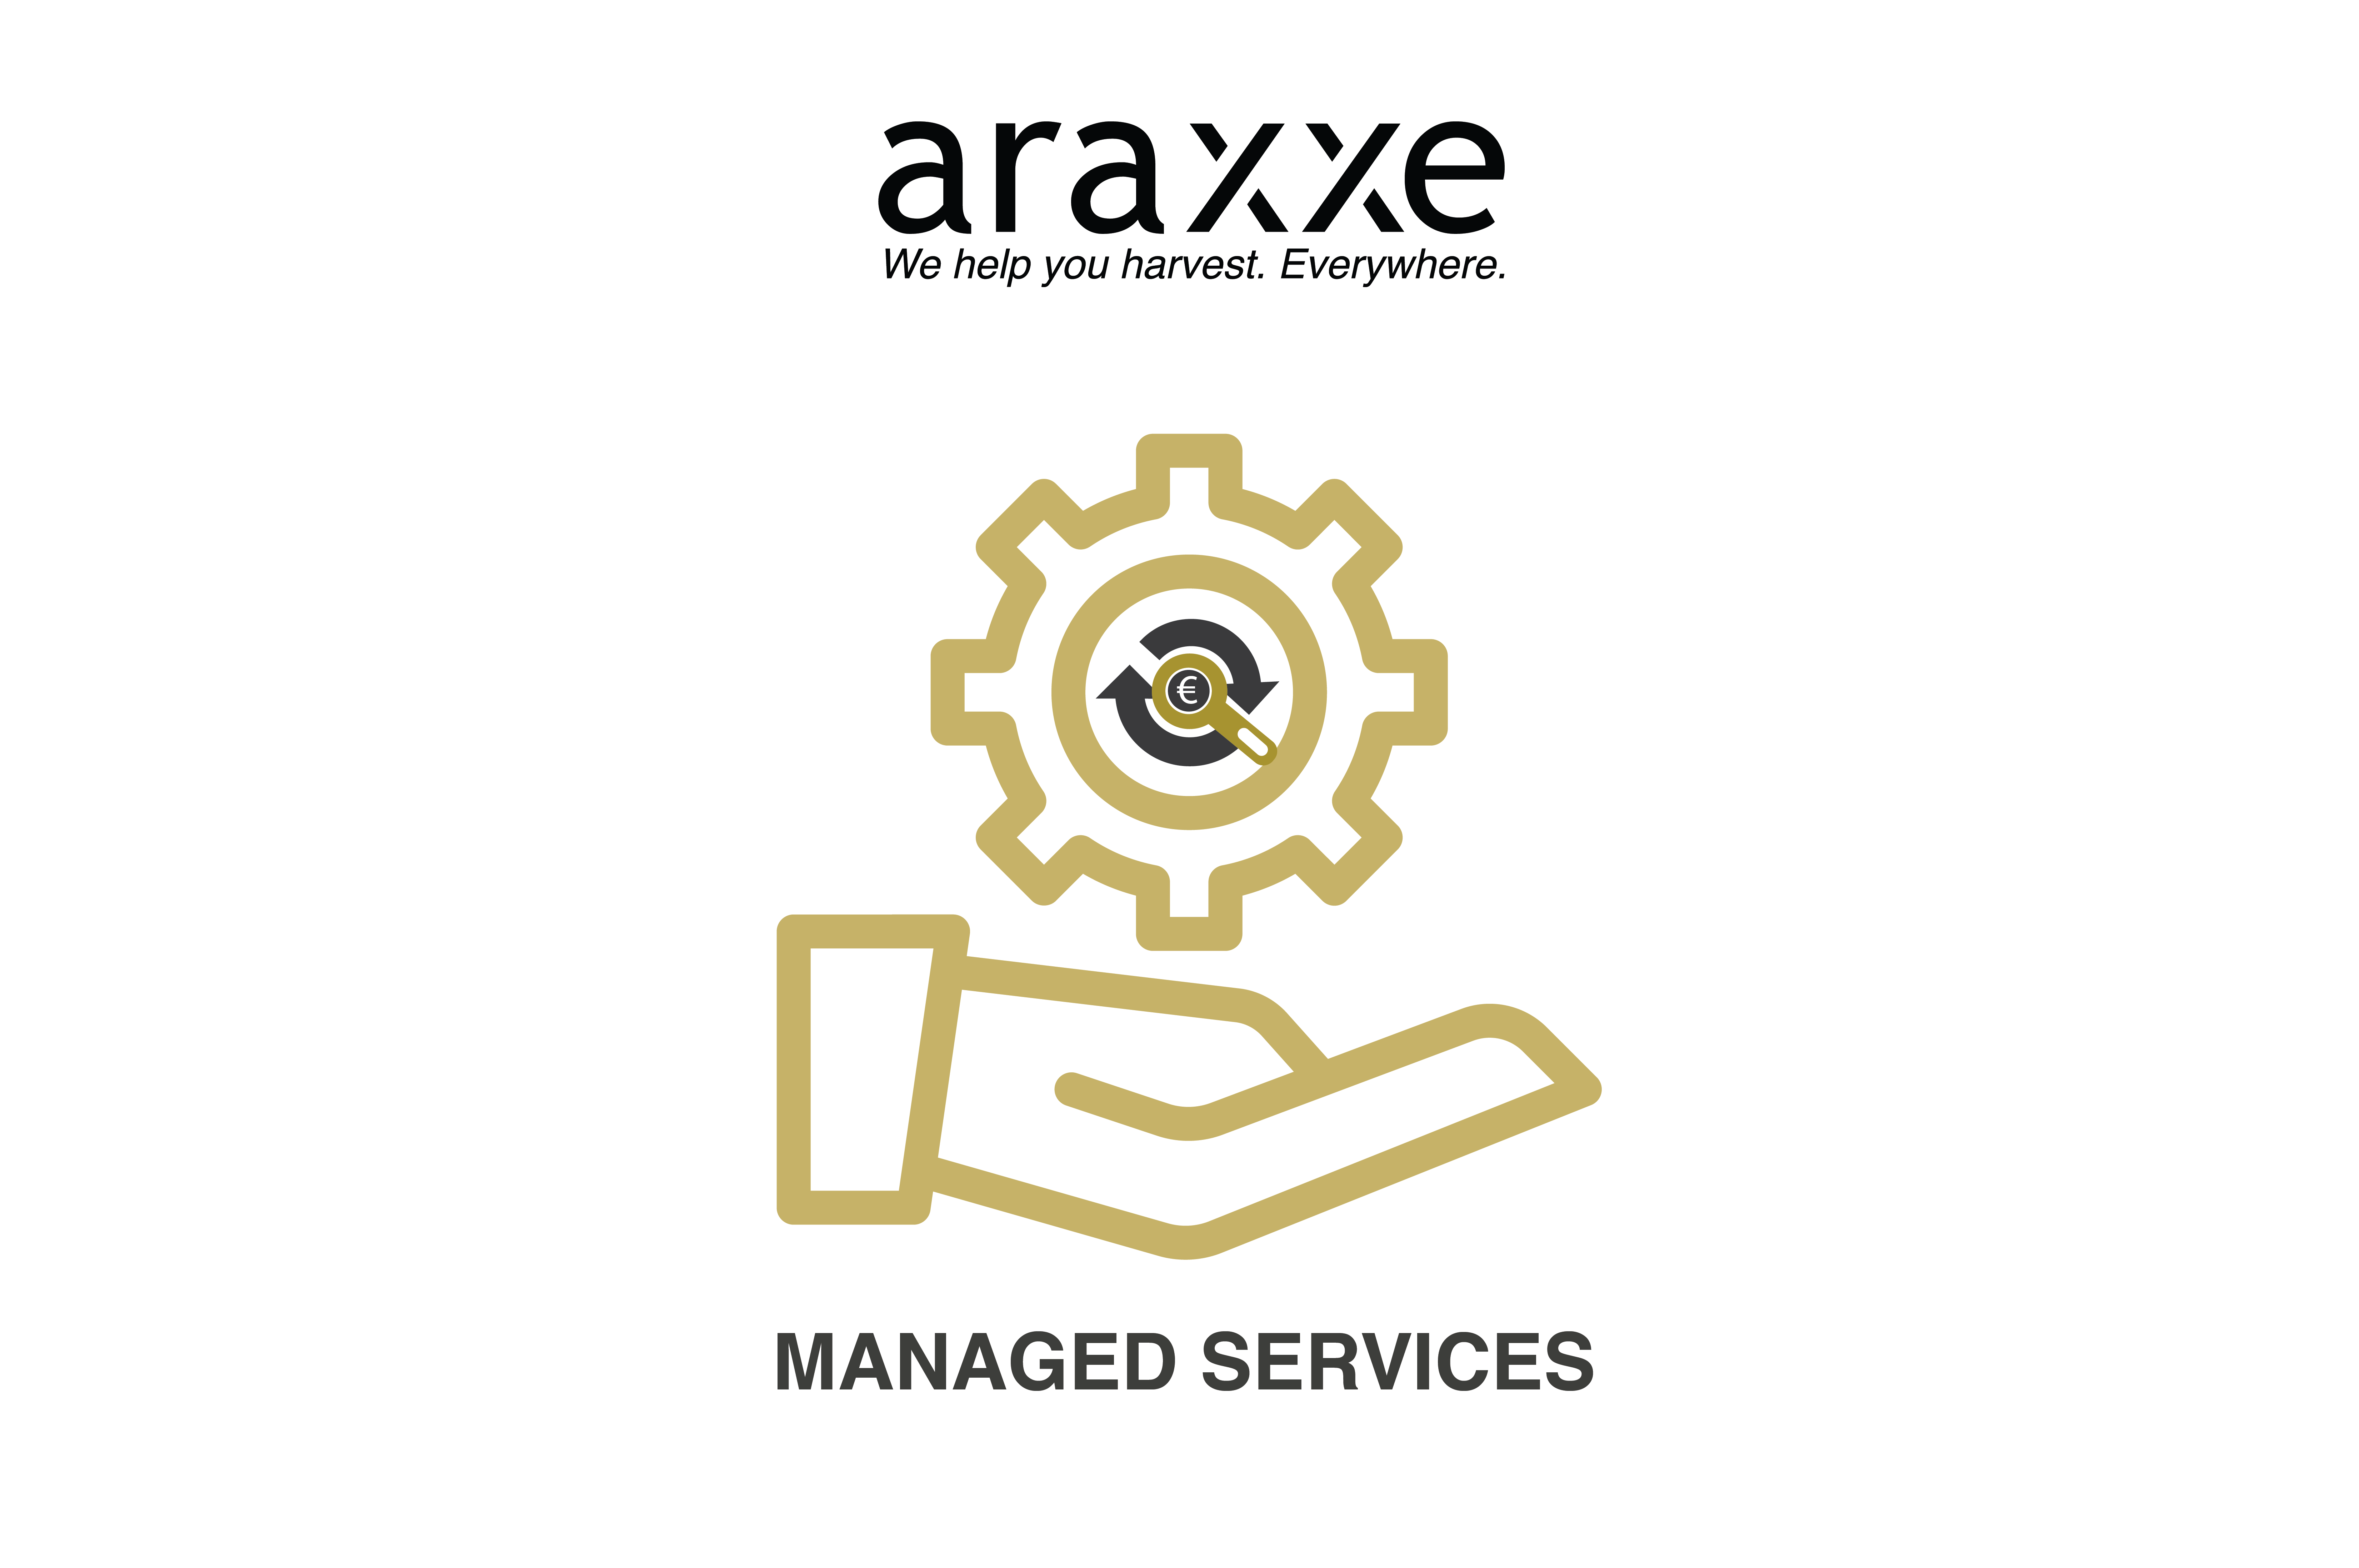 DidYouKnoW #3 - Managed Services